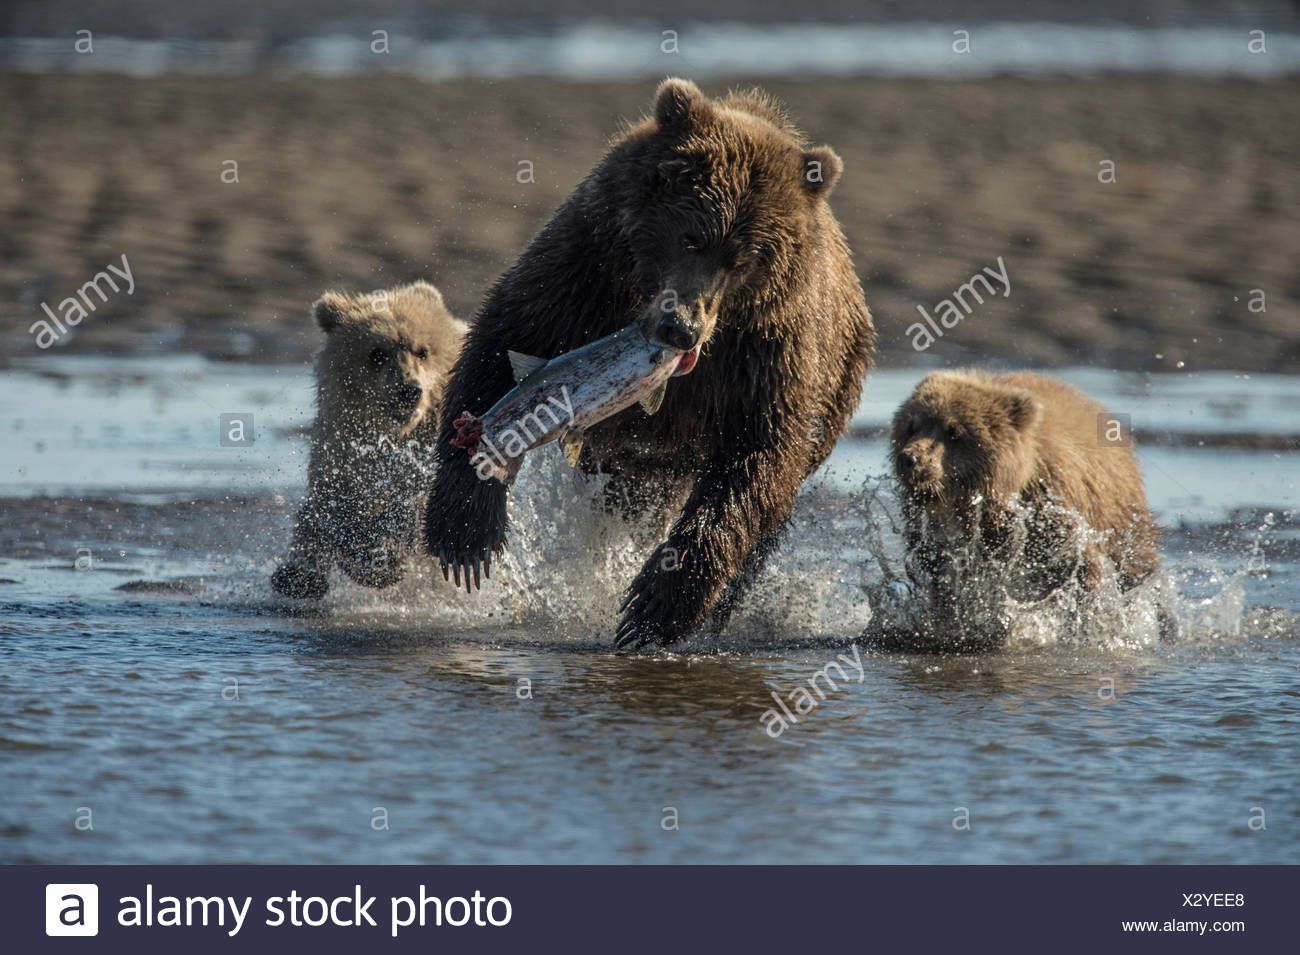 Brown Bear, Ursus arctos, and its two cub catching fish in water at Silver Salmon Creek Lodge. - Stock Image